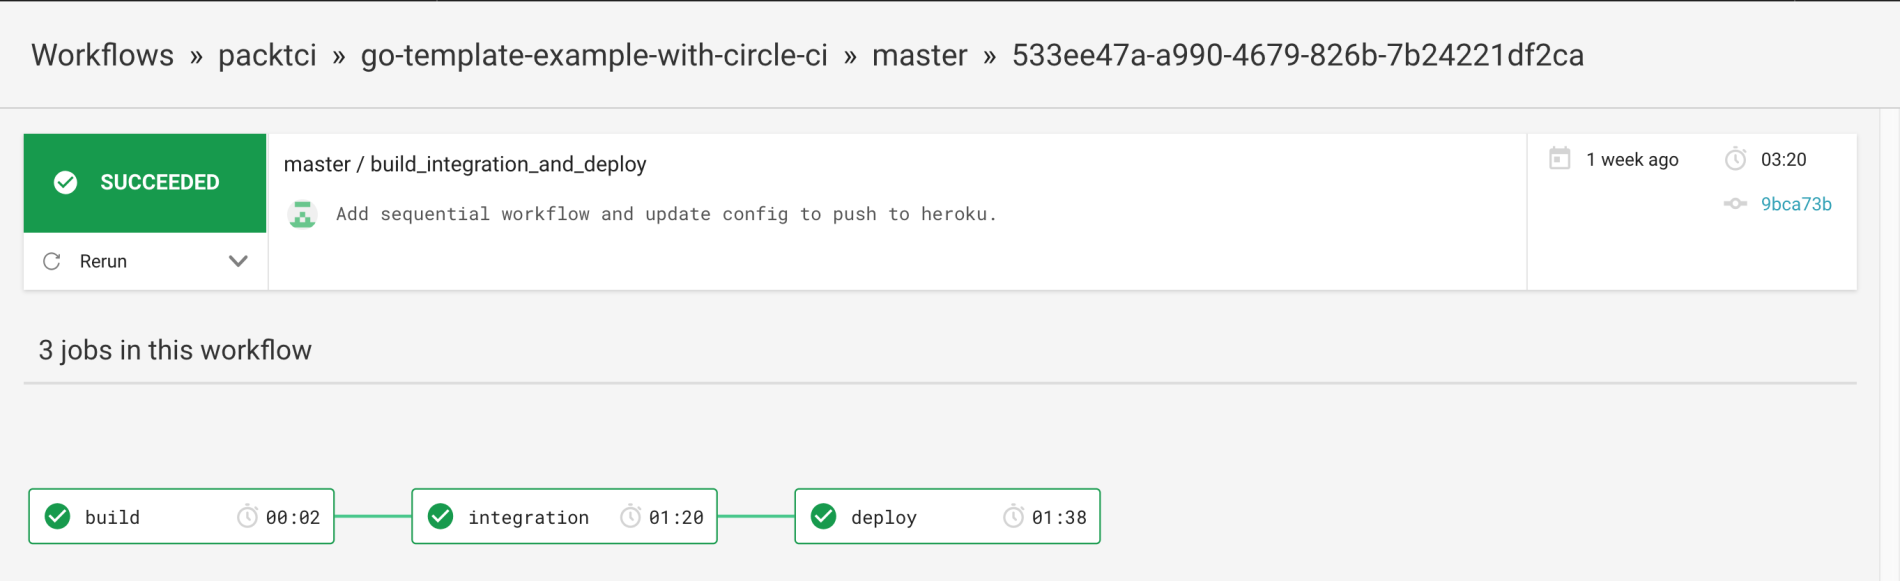 Debugging slow builds in CircleCI - Hands-On Continuous